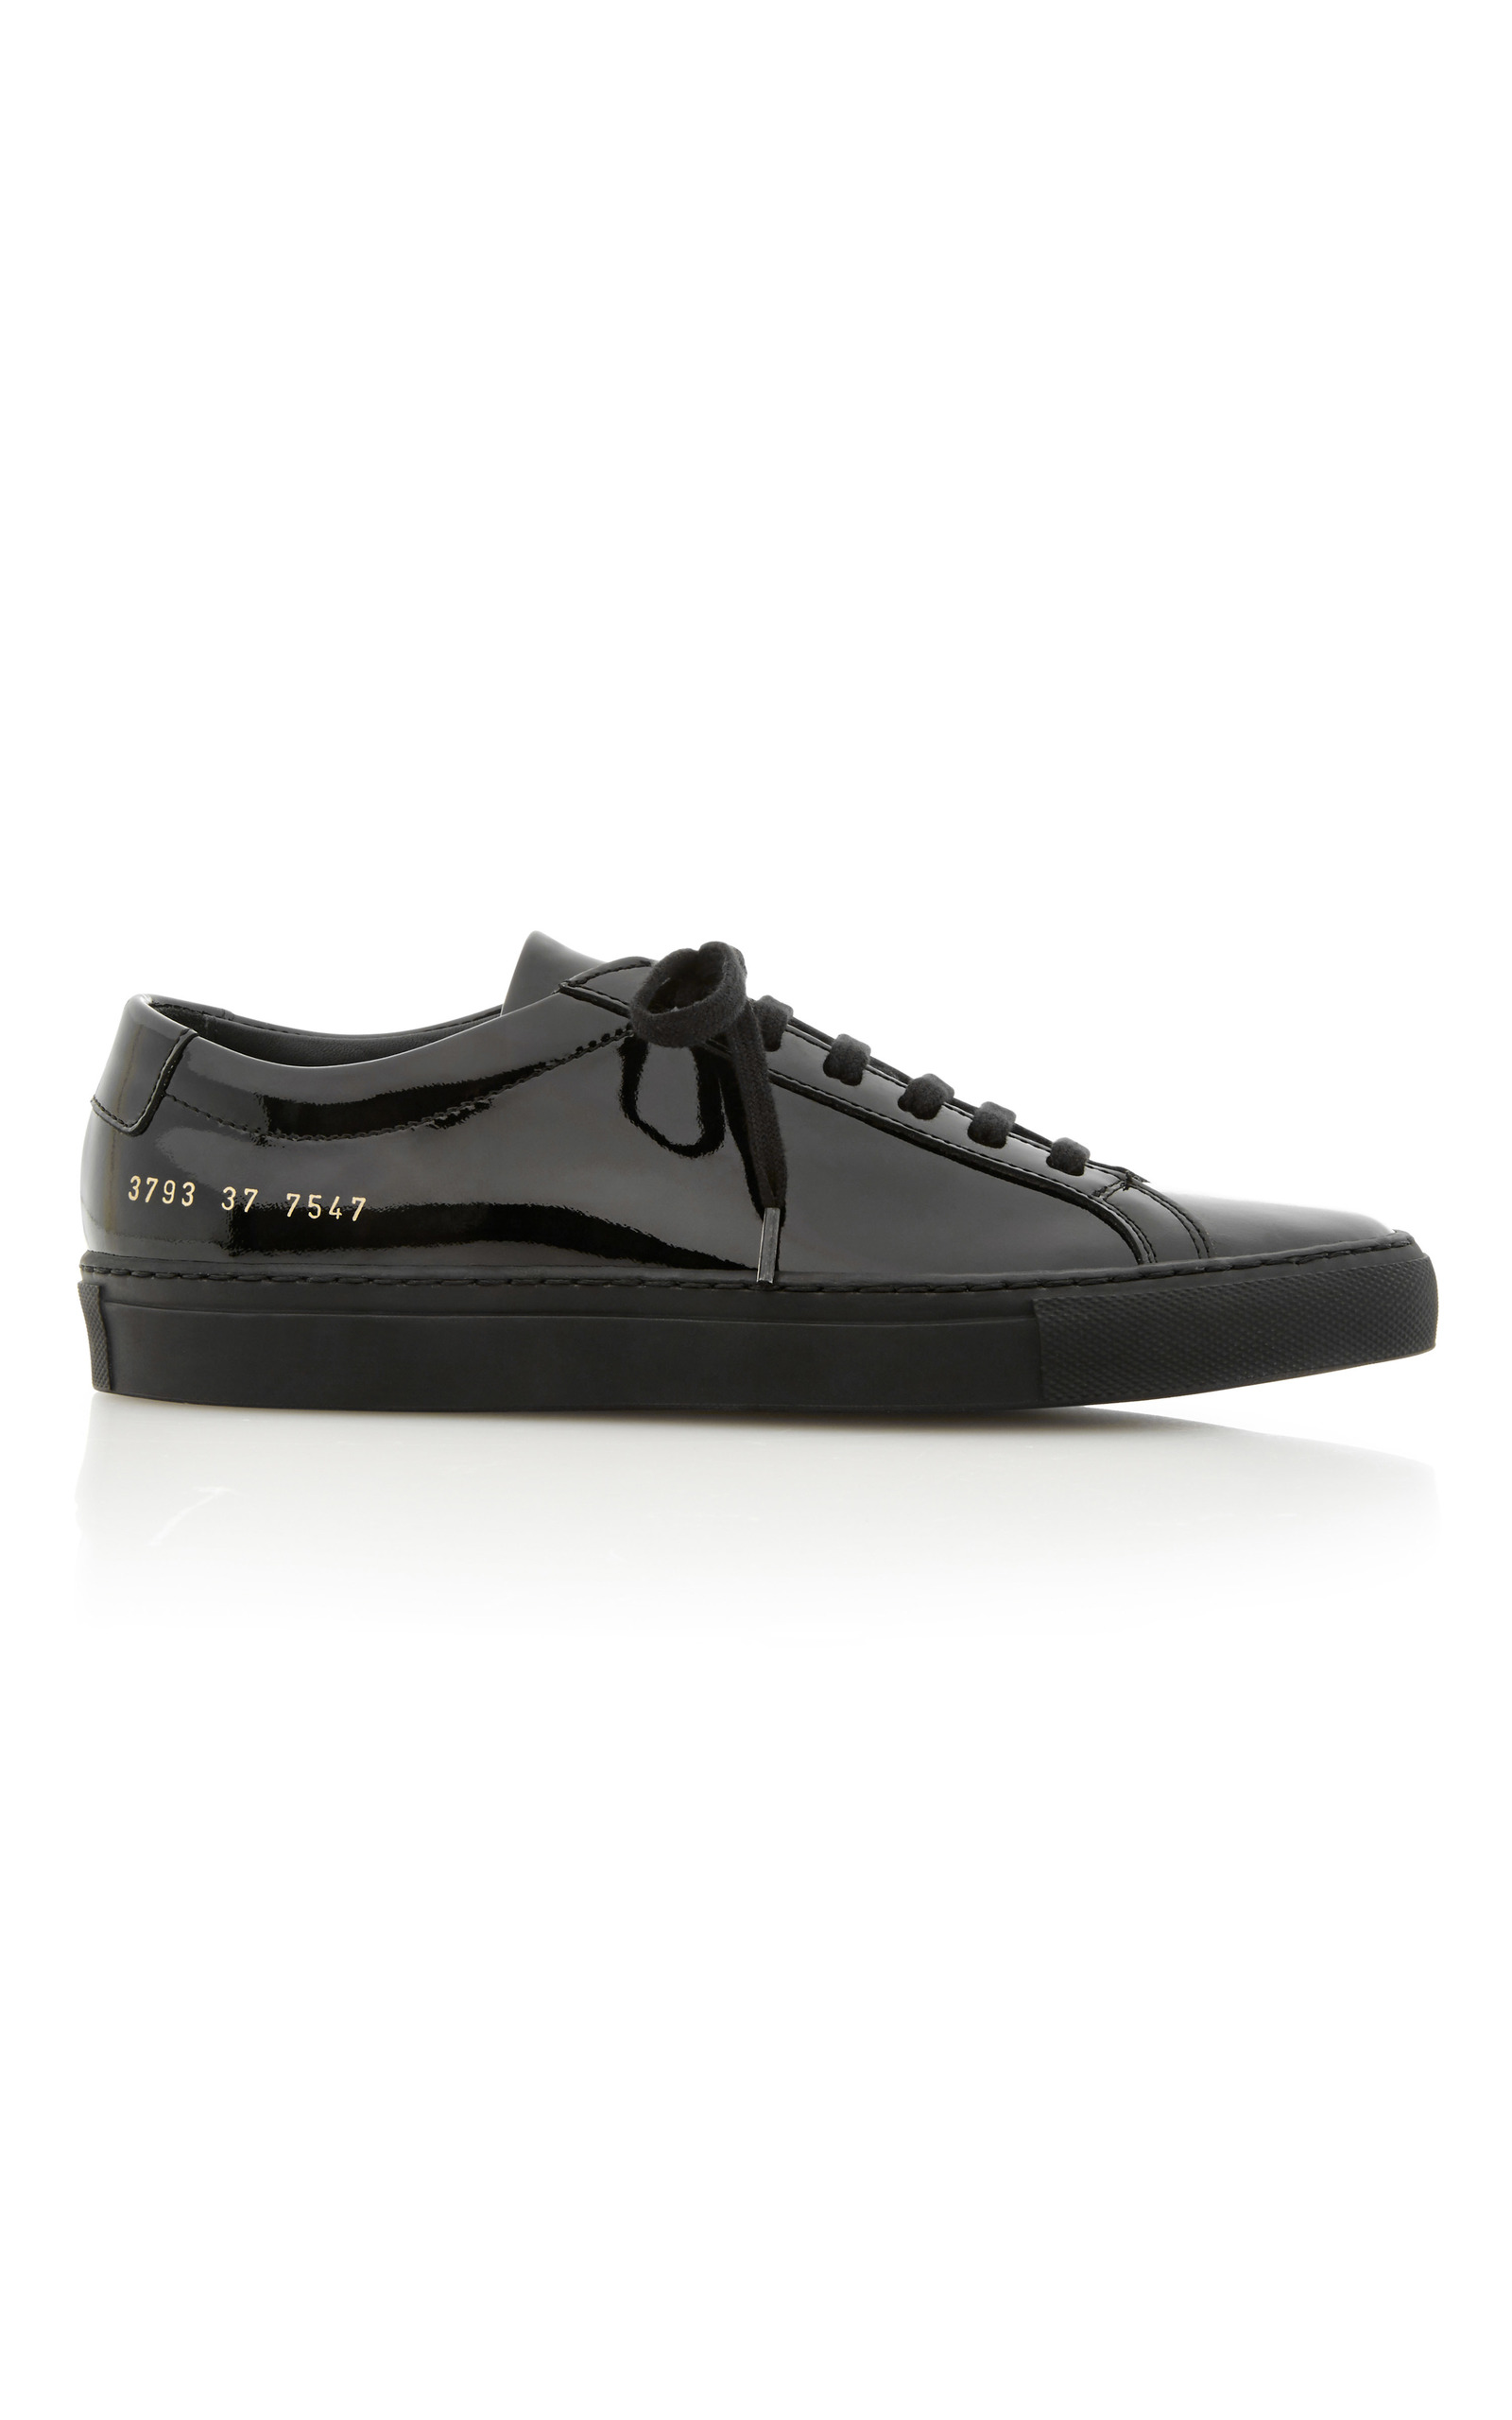 Leather ORIGINAL ACHILLES Sneakers Spring/summer Common Projects Free Shipping With Mastercard JOvz25Ju